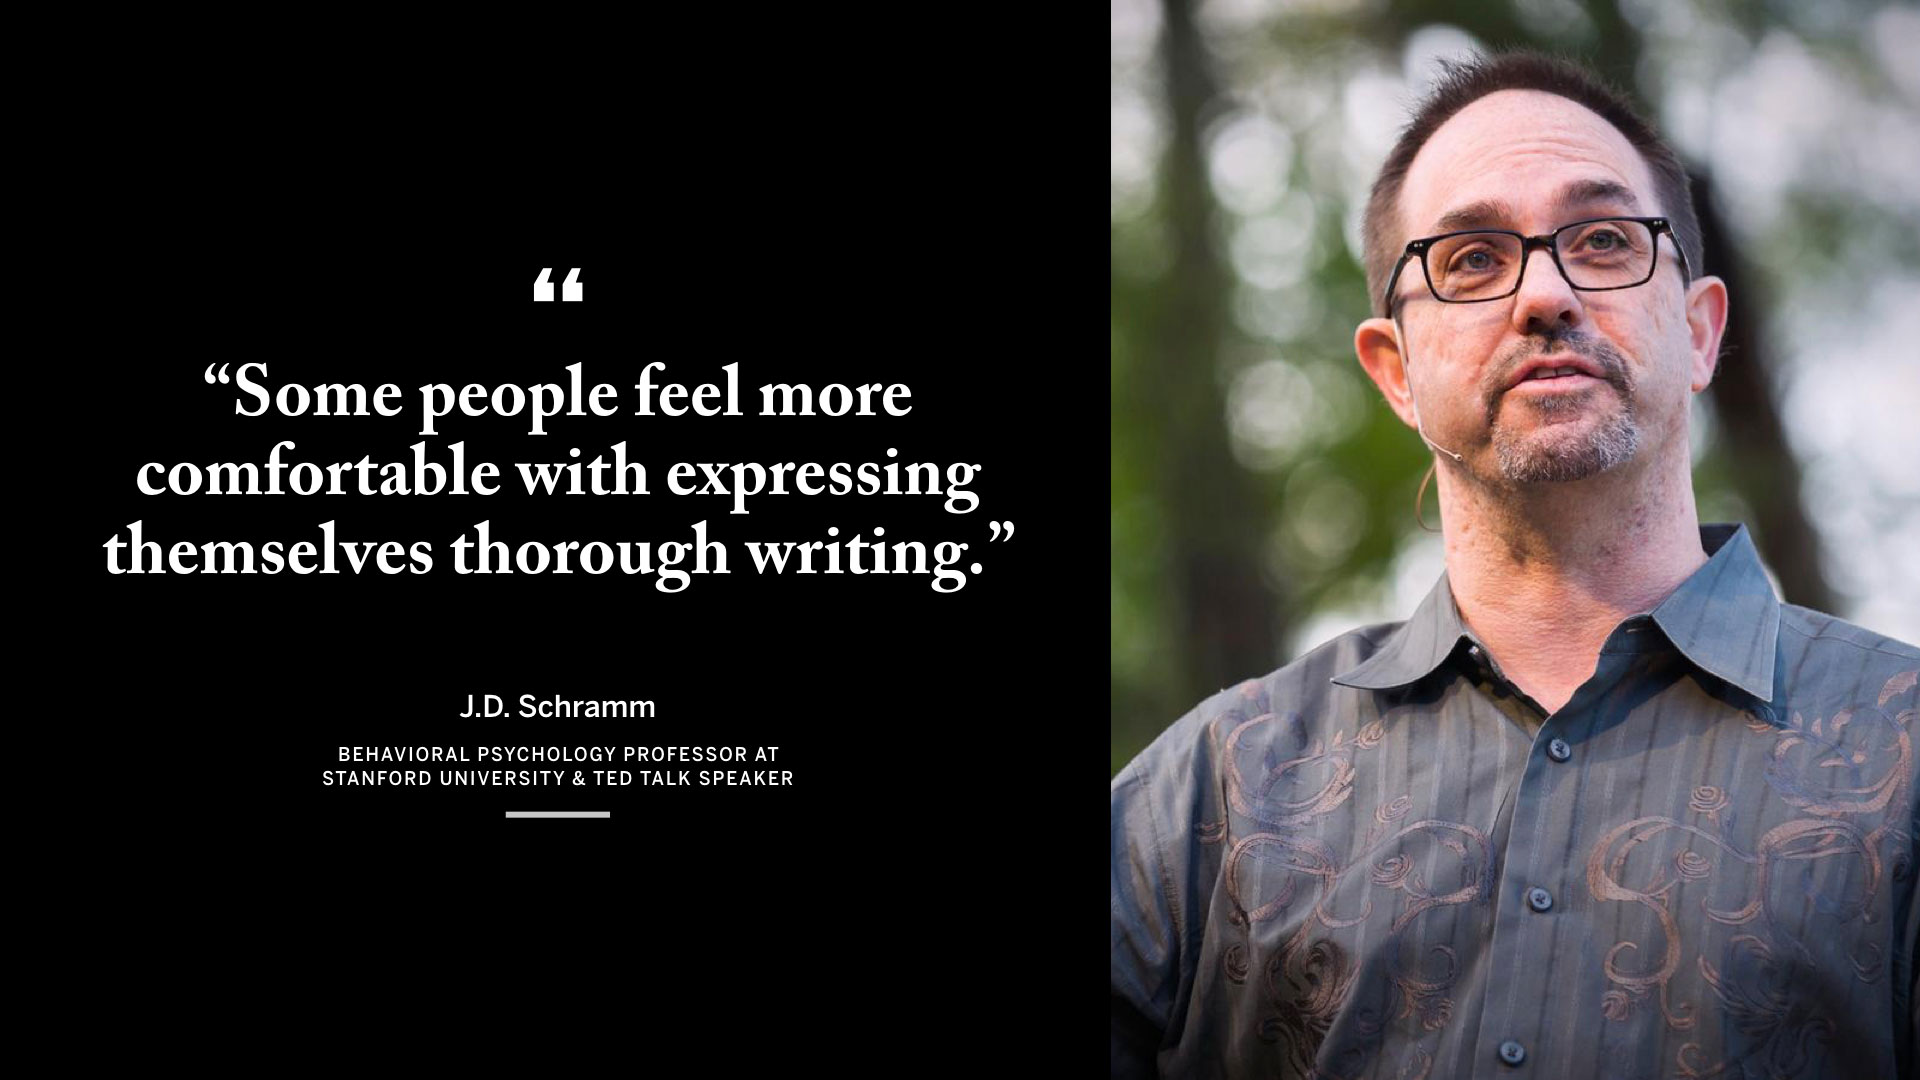 Lee_Write-interview-quote1.jpg